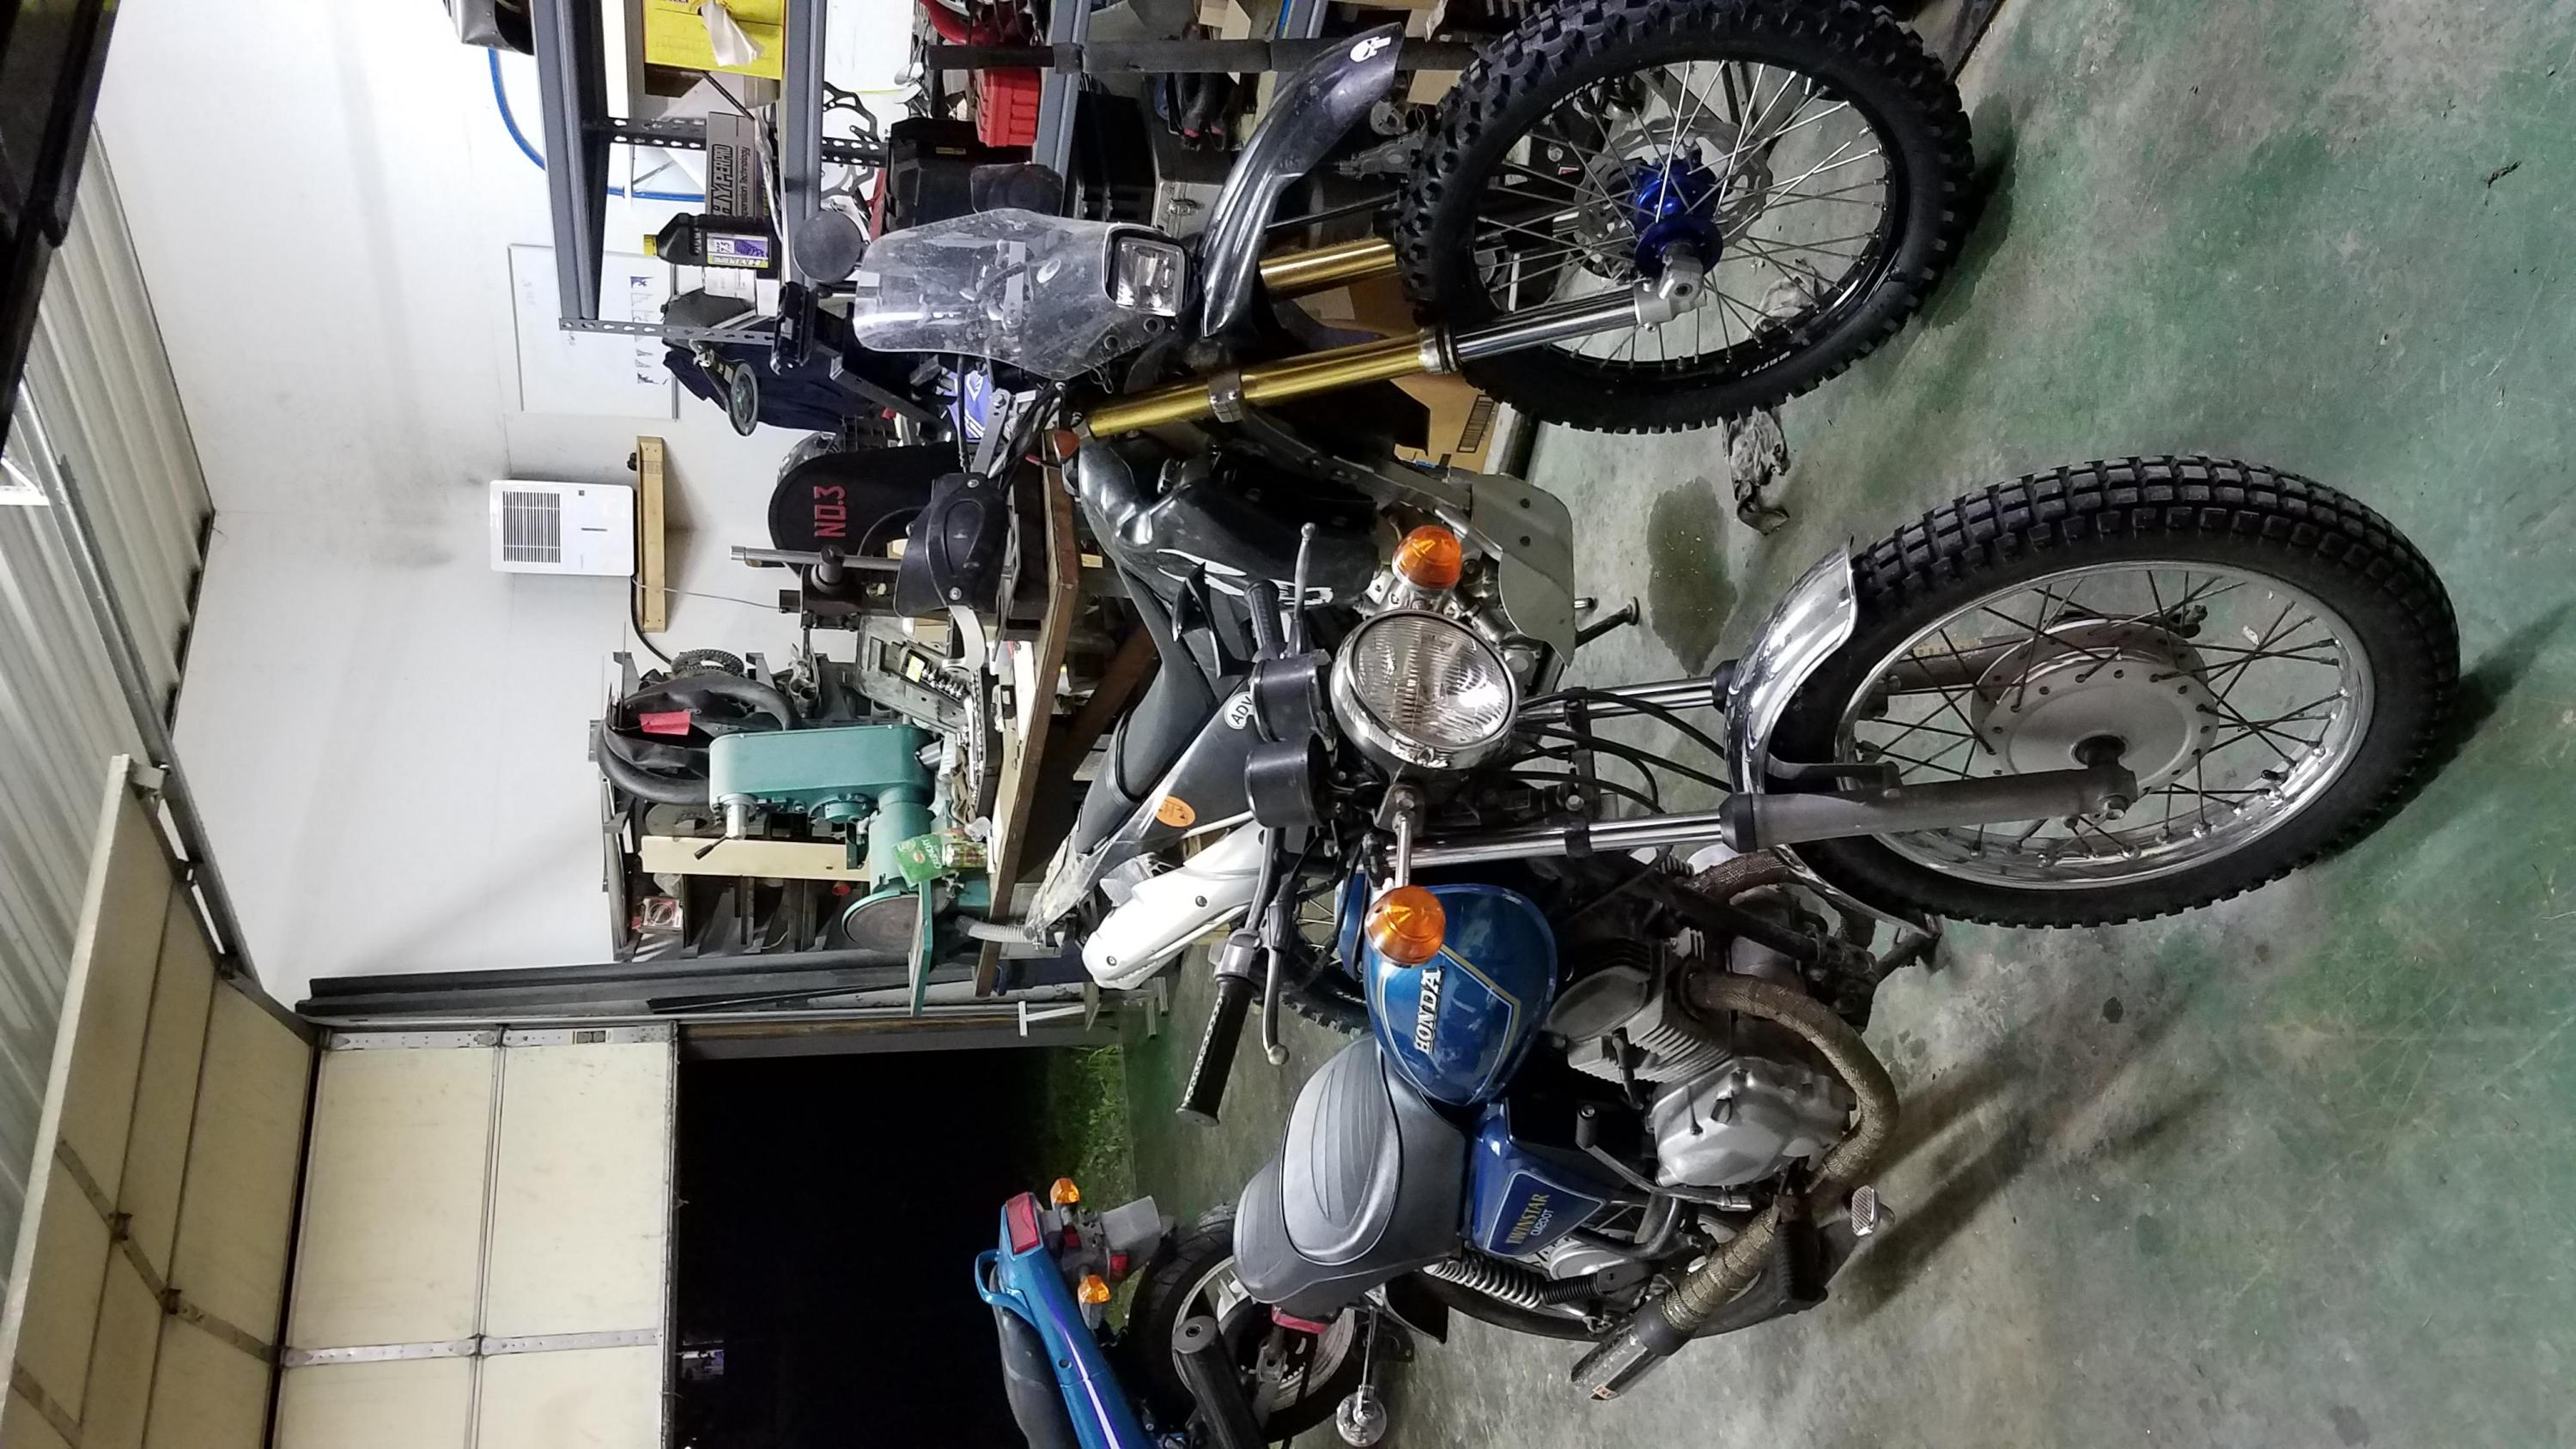 Taking a 1981 CM200T on a budget dual sport ride... anyone ever look into options-20190615_215544.jpg